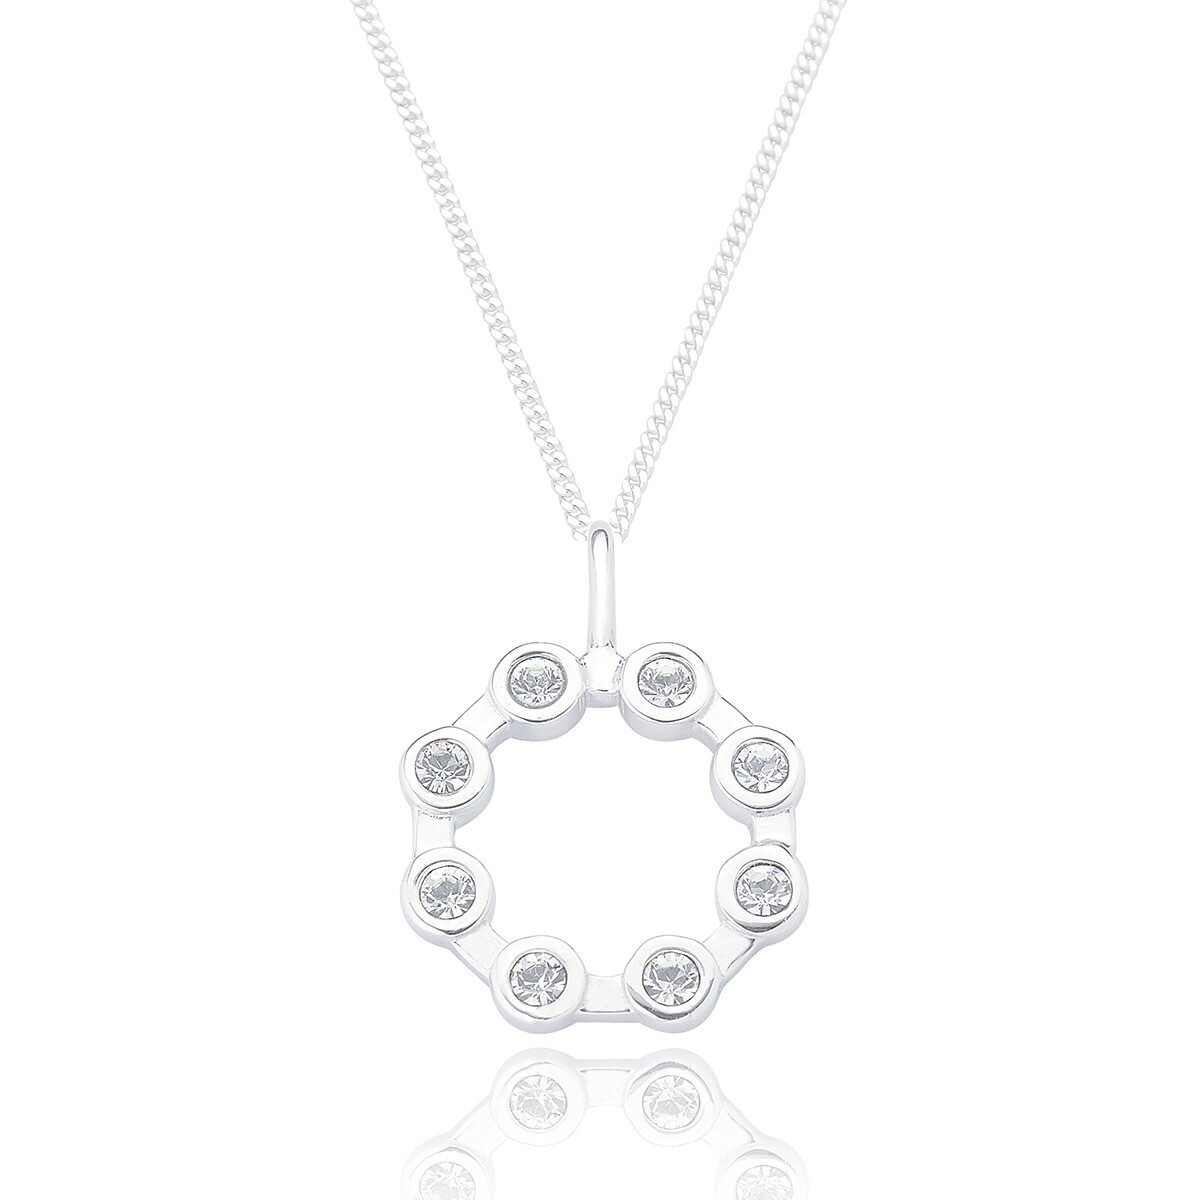 Contemporary Open Circle With Chain